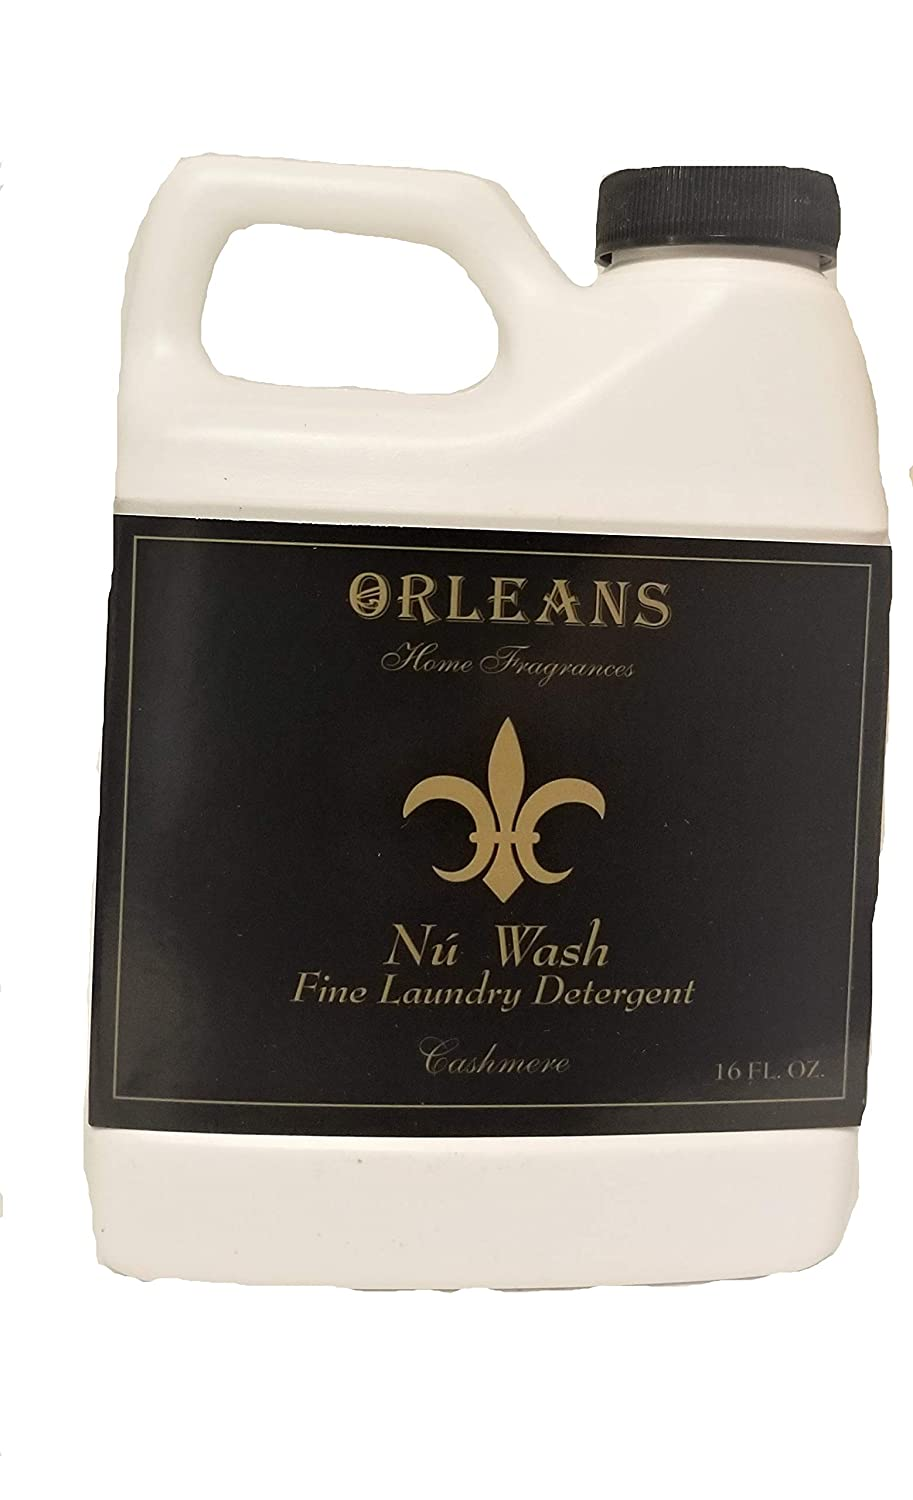 Orleans Home Fragrances Nu Wash 16oz bottle - Cashmere